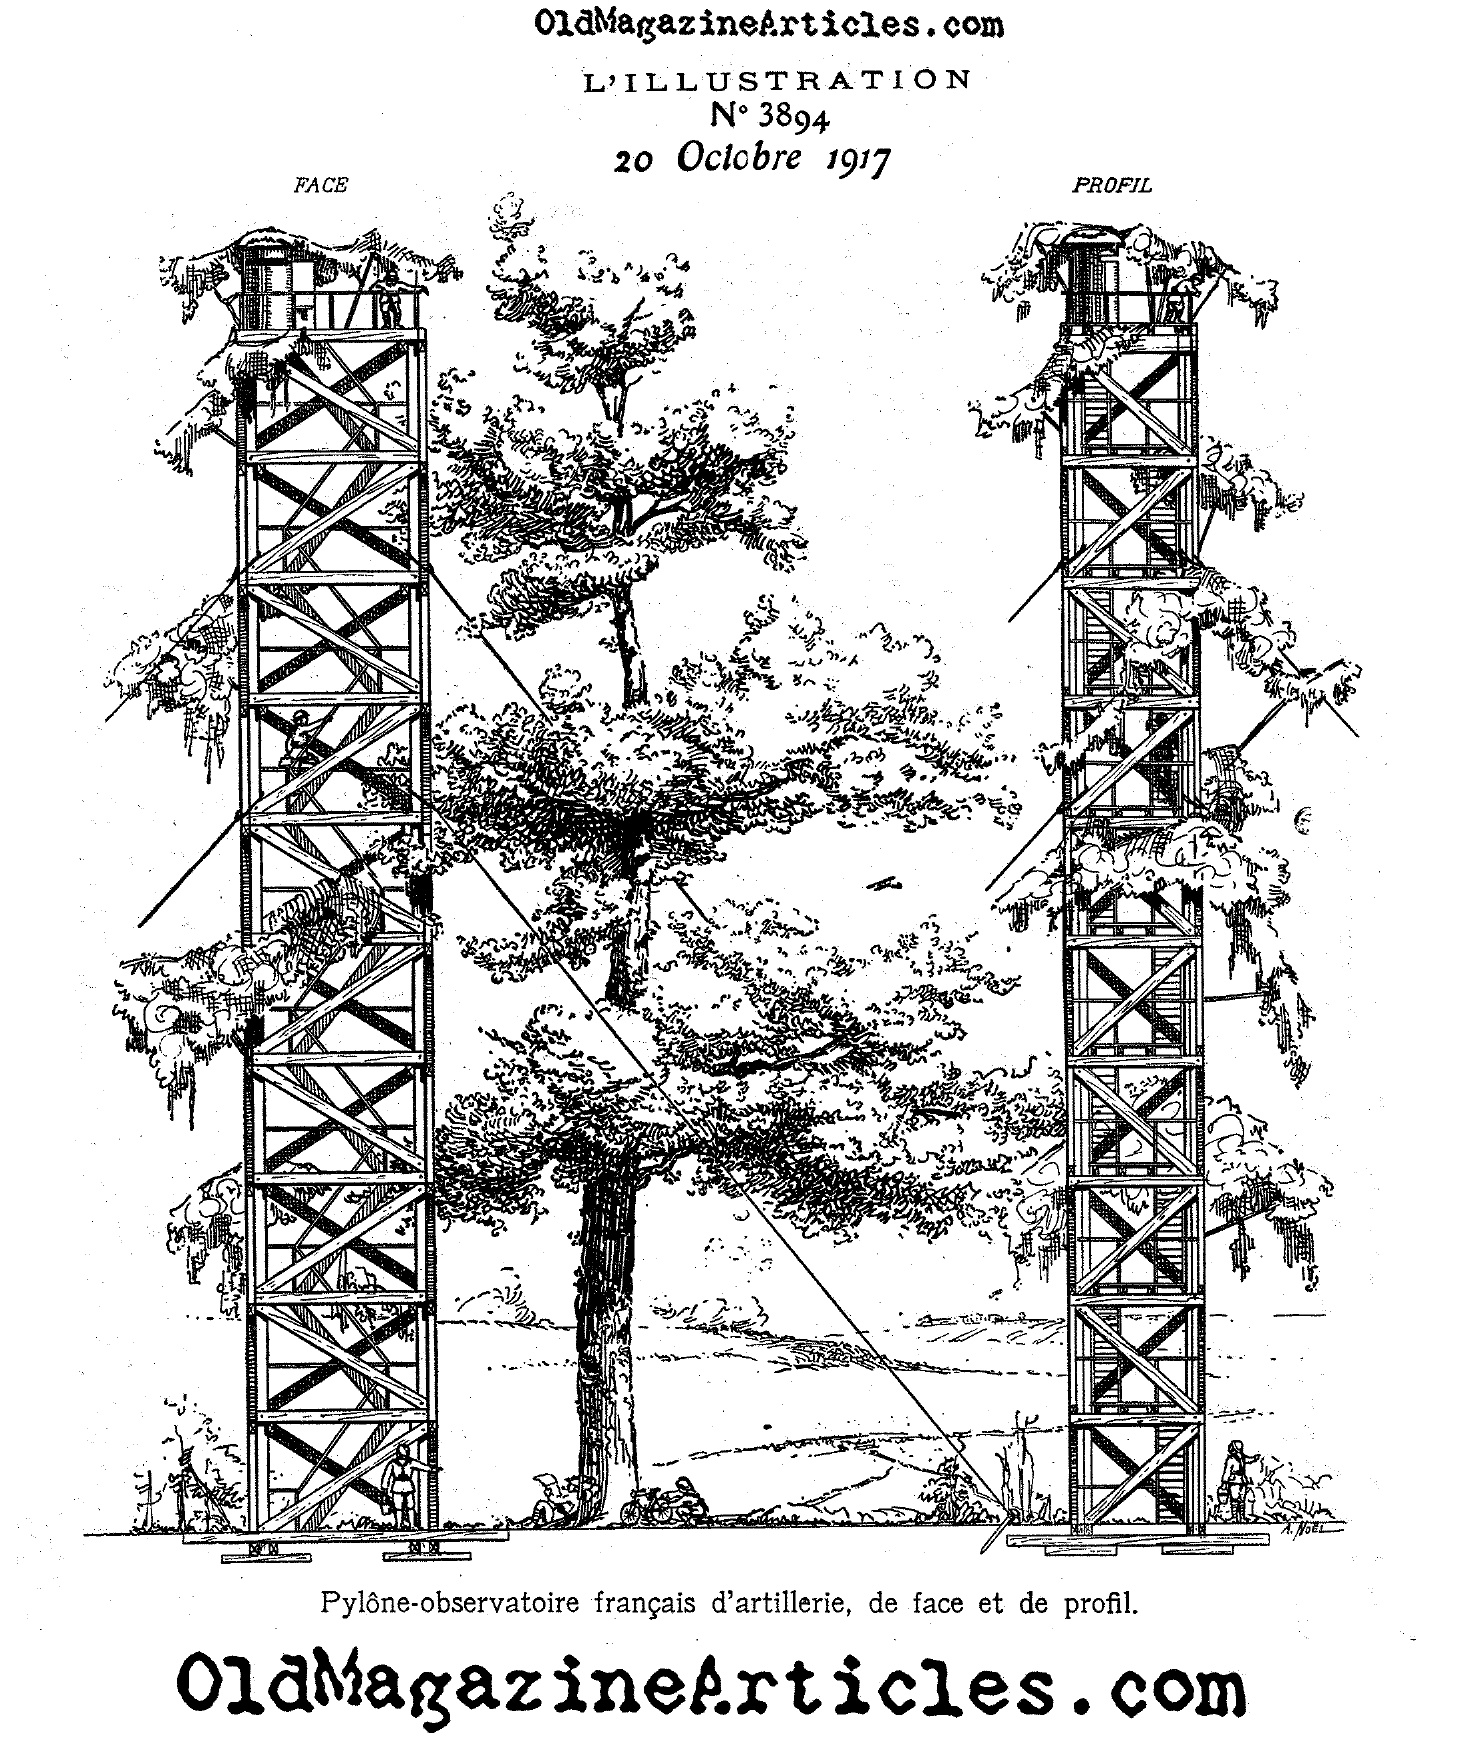 Diagram Of A Ww1 Artillery Observation Towerww1 Tower For Usb Webcam Wire An Lillustration 1917